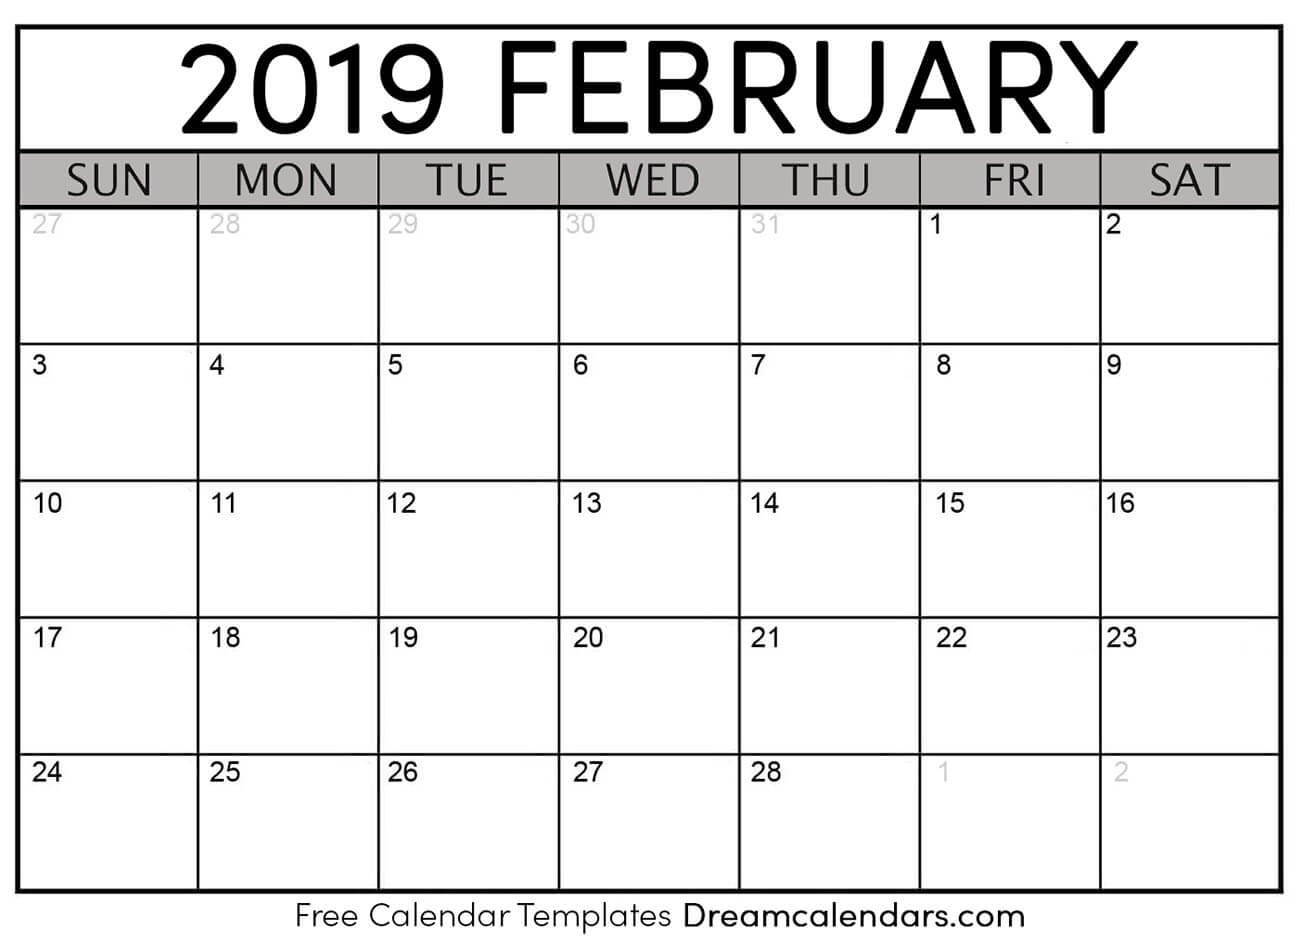 picture about Printable February Calendar titled Printable February 2019 Calendar Templates - Helena Orstem